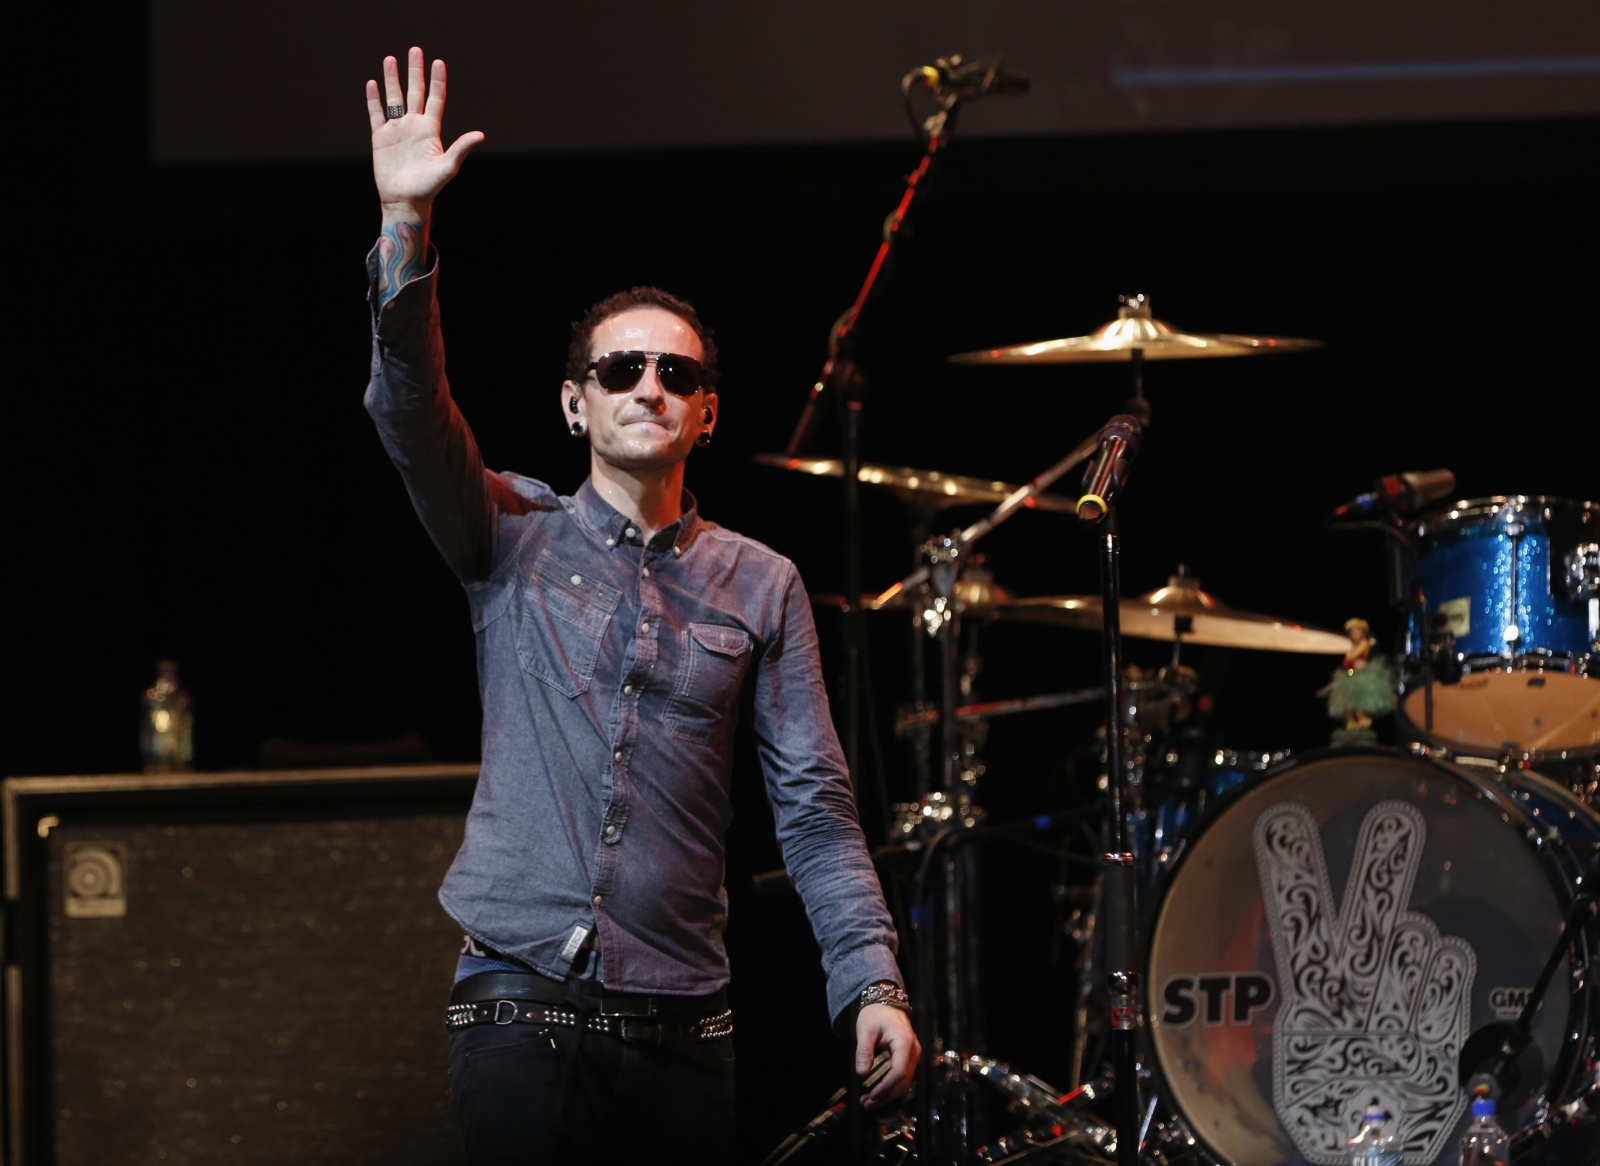 Linkin Park's Chester Bennington died on late rocker friend Chris Cornell's birthday